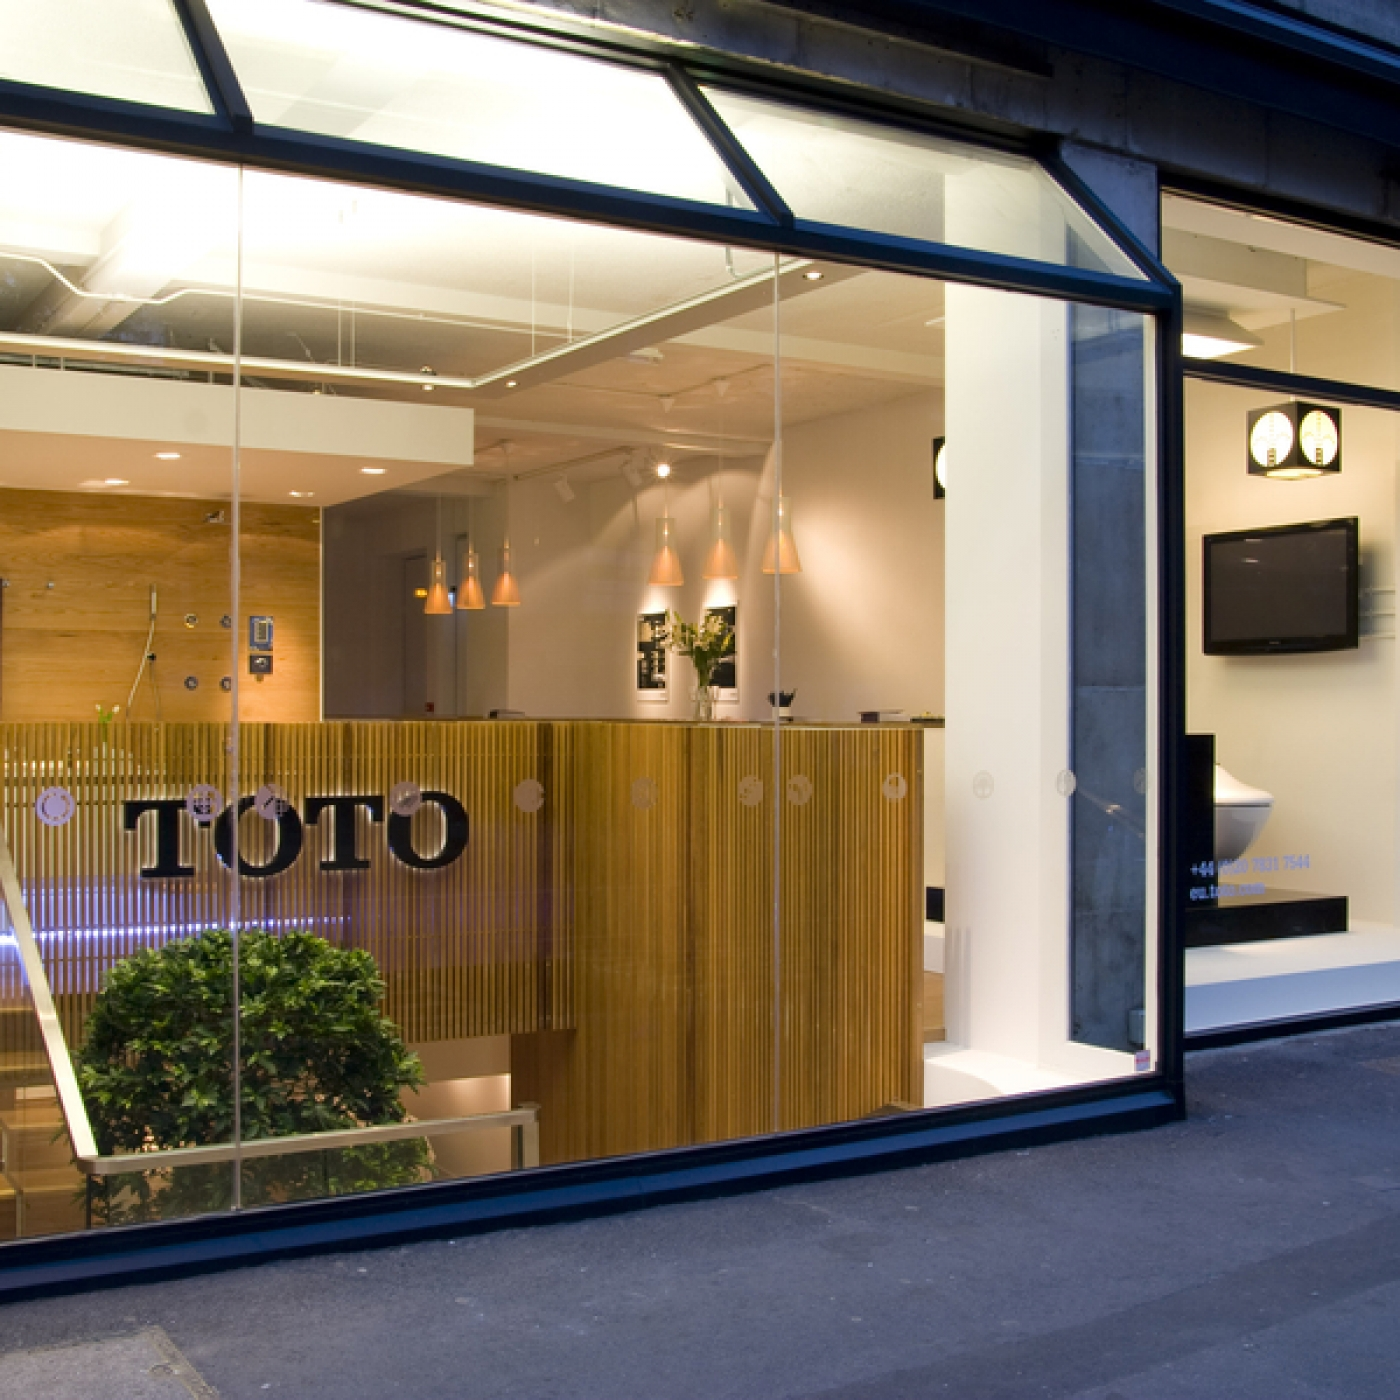 Hyde Park Bathrooms and Kitchens - Toto Showroom